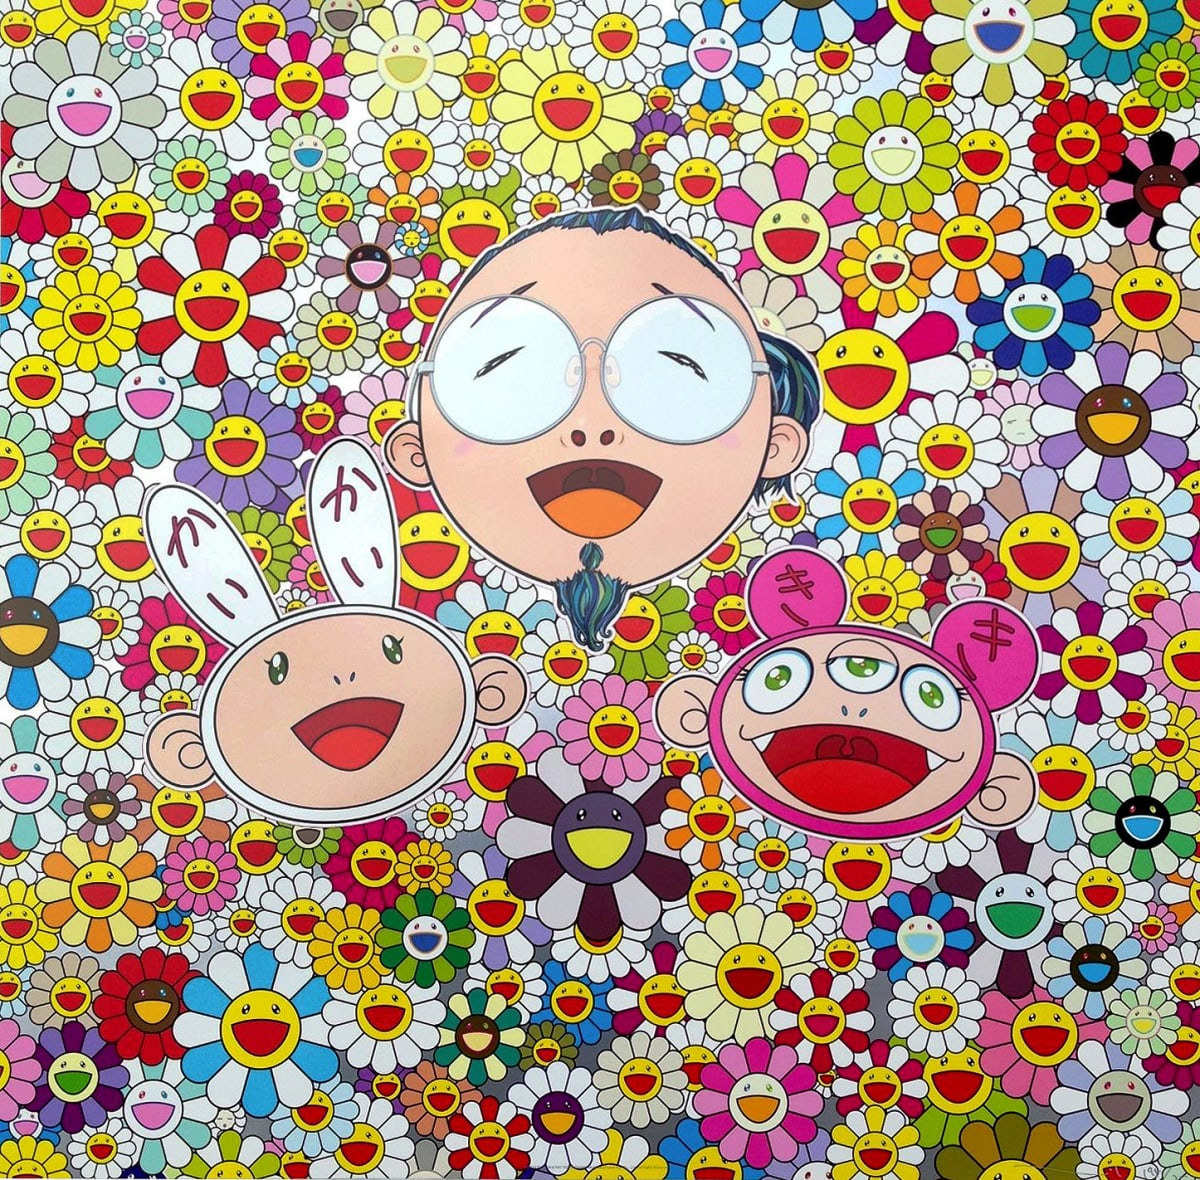 Takashi Murakami, Me And Kaikai and Kiki, 2009